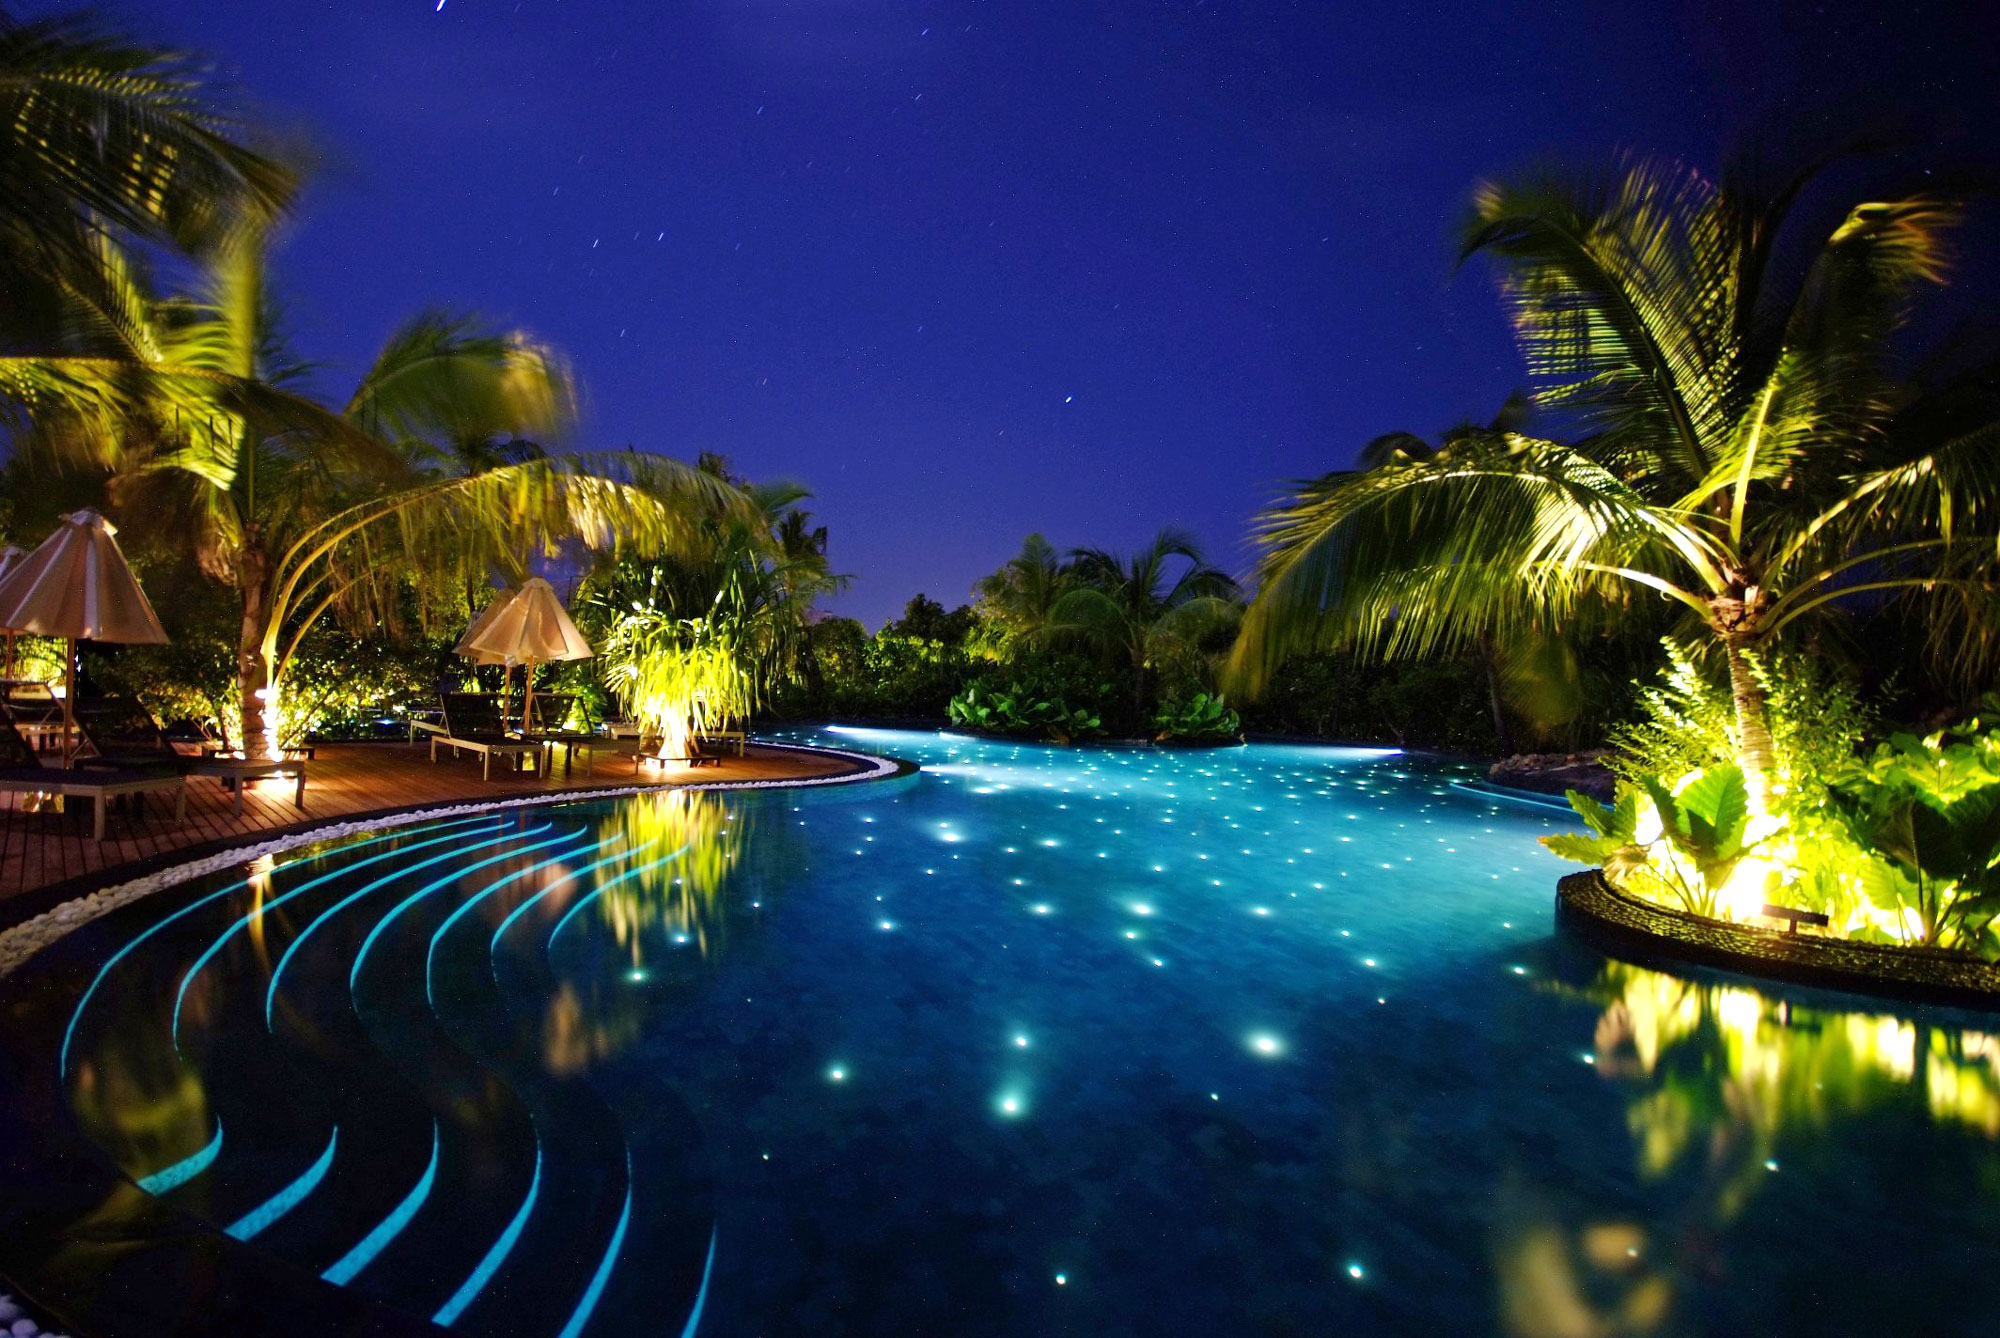 beach house pool iruveli a serene house in maldives architecture 315